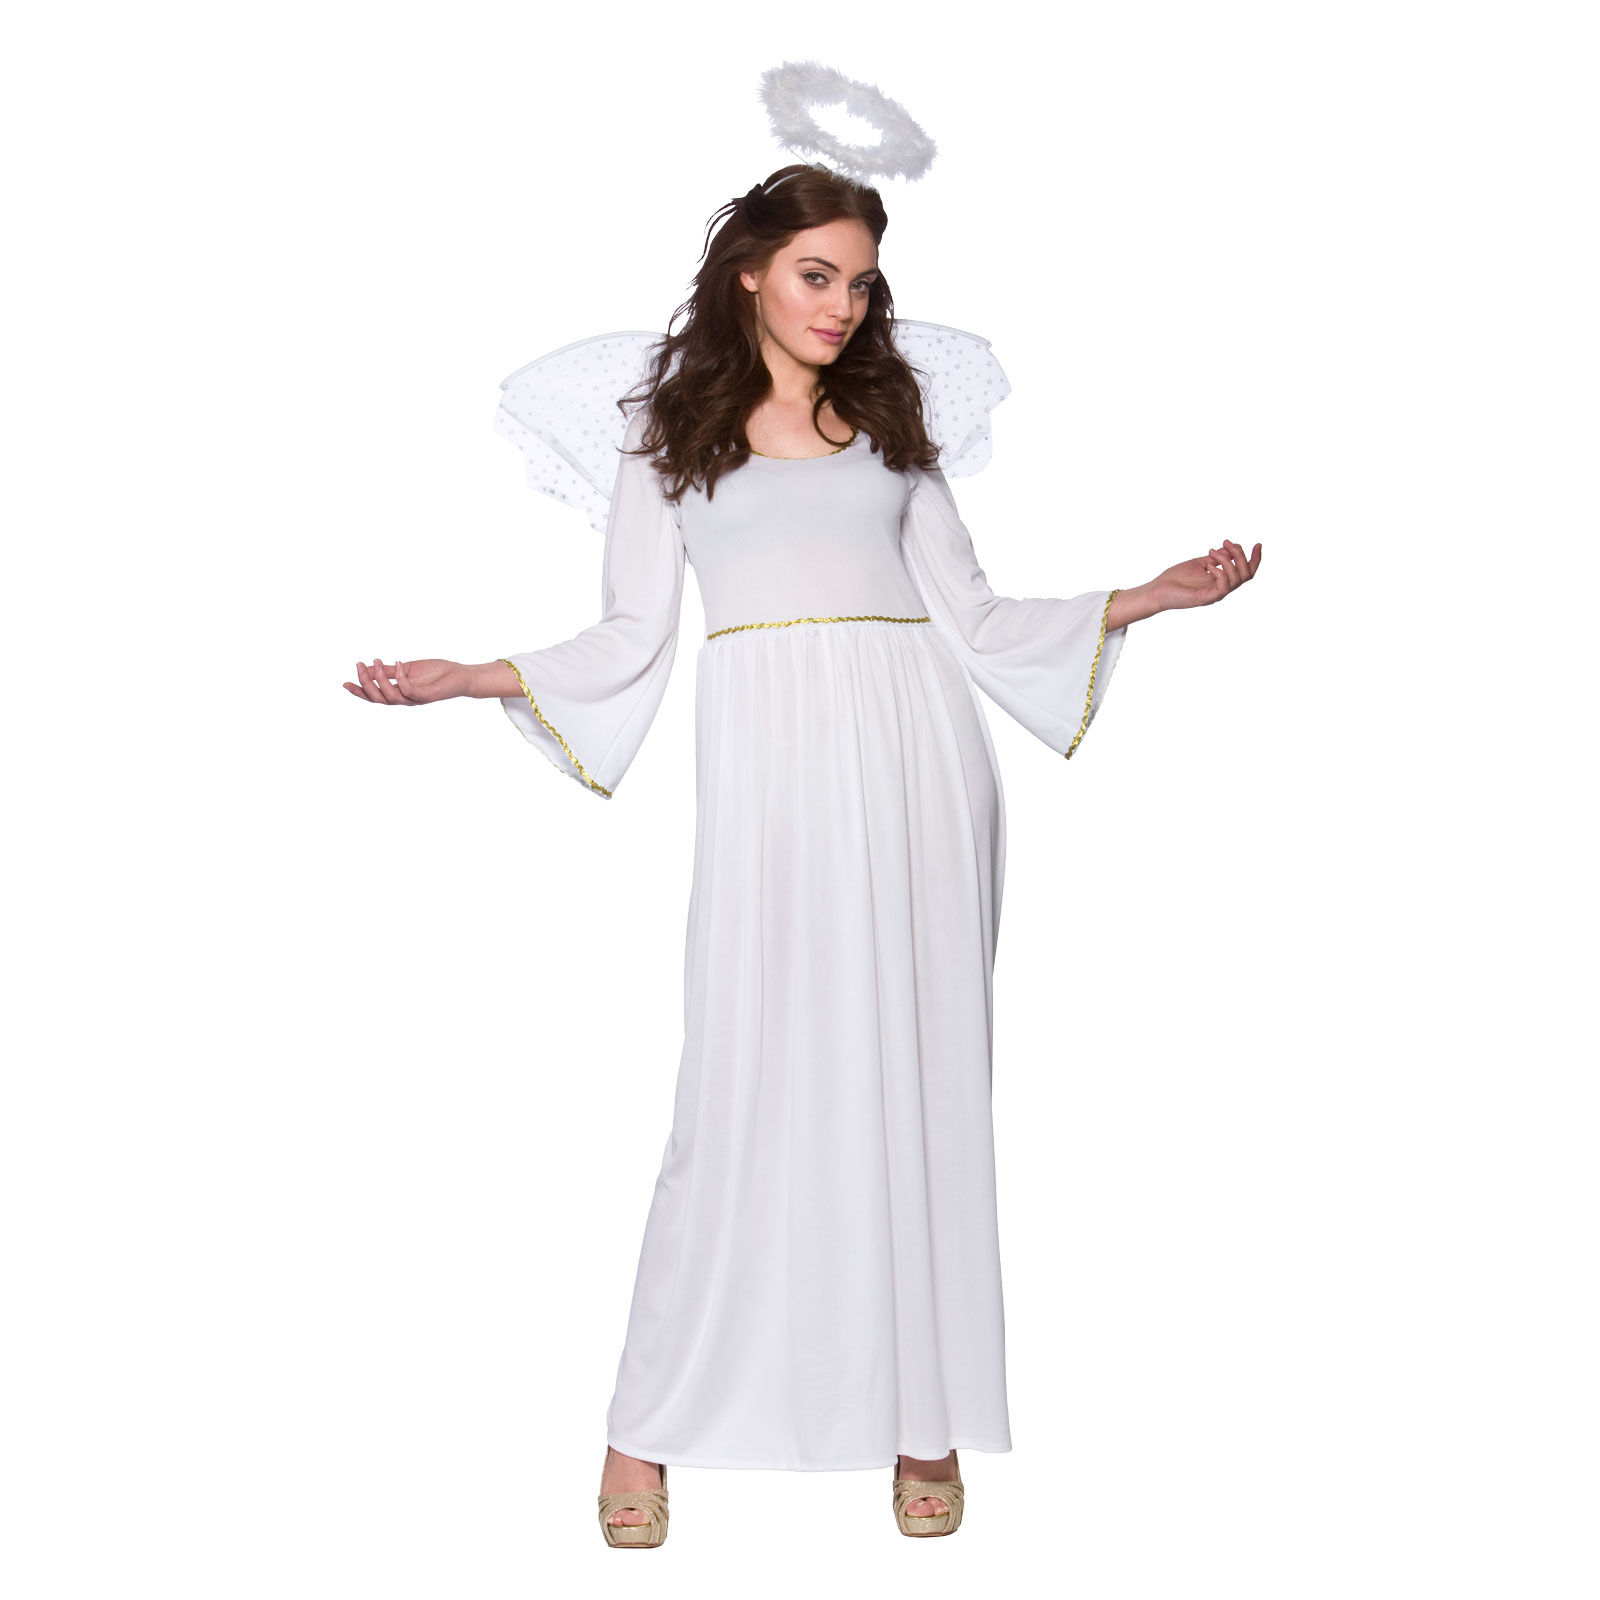 ladies white good angel christmas nativity fancy dress up party costume outfit ebay. Black Bedroom Furniture Sets. Home Design Ideas